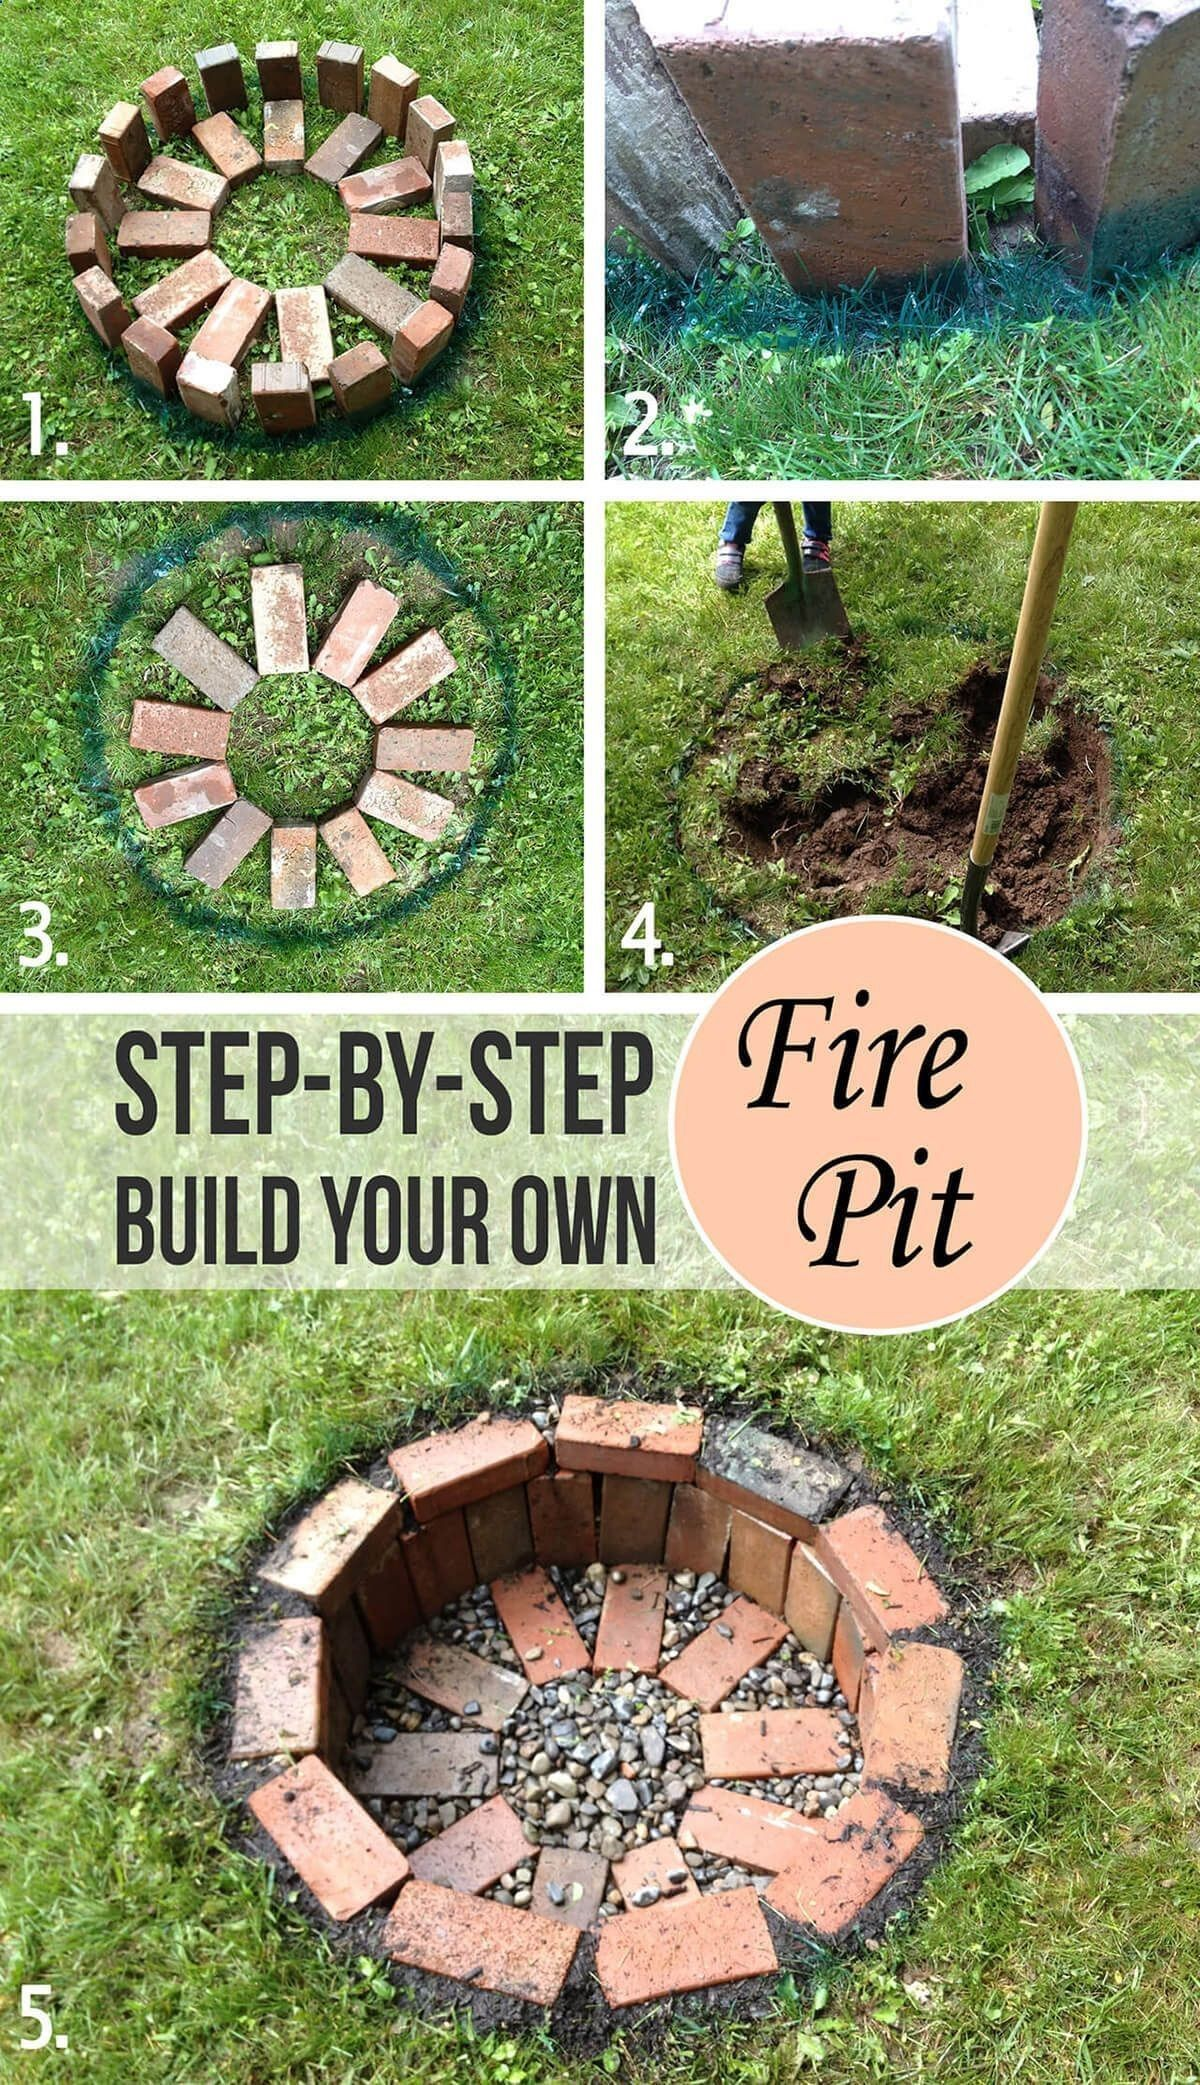 Shed DIY Easy In Ground DIY Brick Fire Pit easyhomedecor Now You